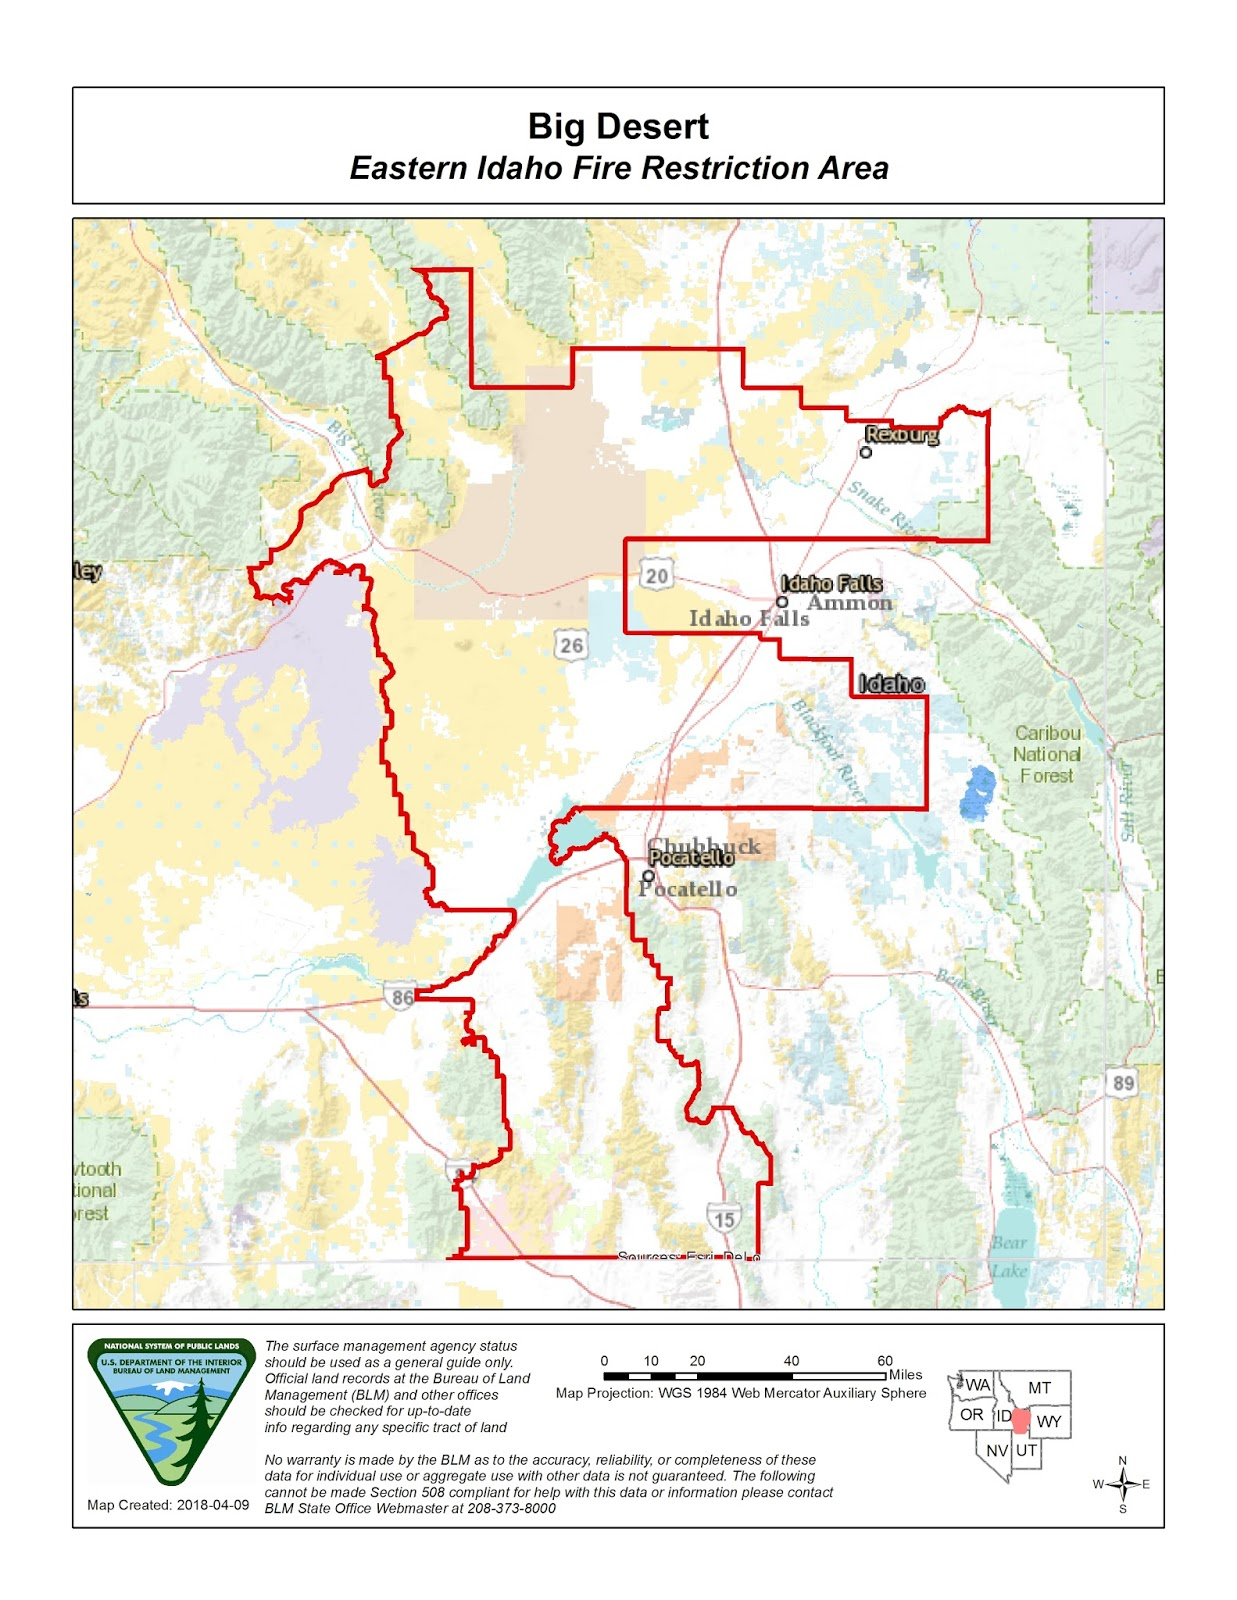 Idaho Fire Information Eastern Idaho Fire Restriction Area